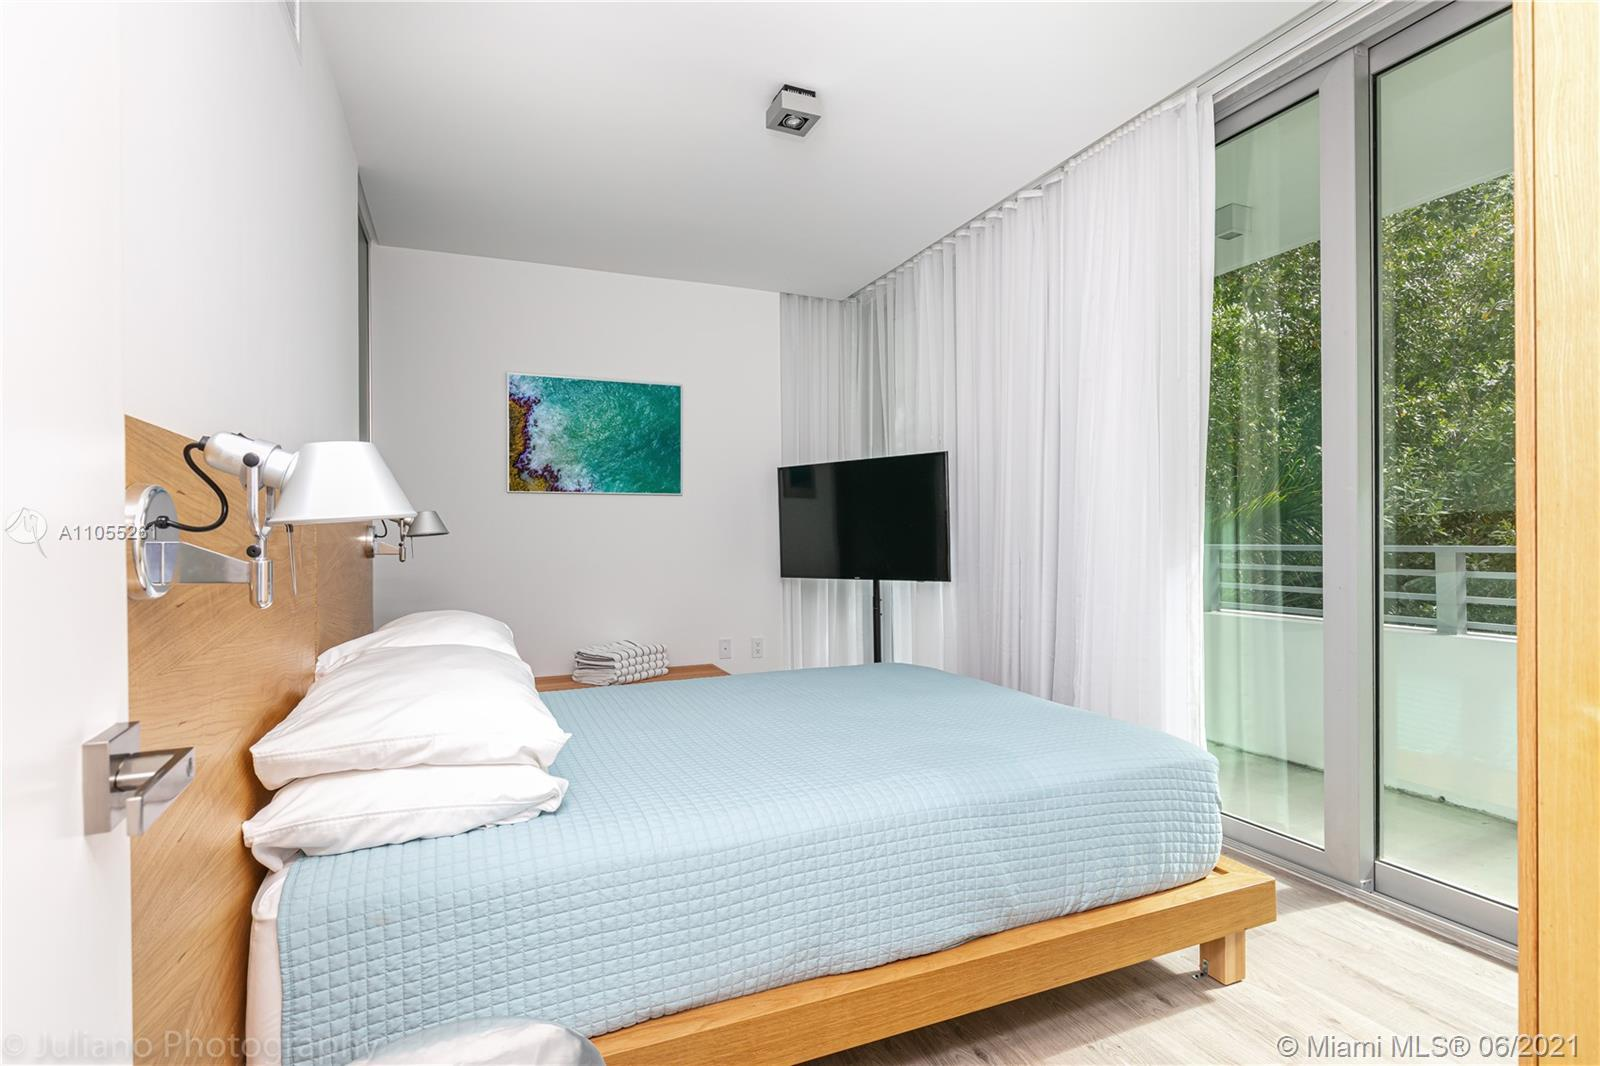 BEAUTIFUL ONE BEDROOM CORNER UNIT, ACROSS FROM THE BEACH,ROBOTIC PARKING SPACE INCLUDED ($294 MONTHL